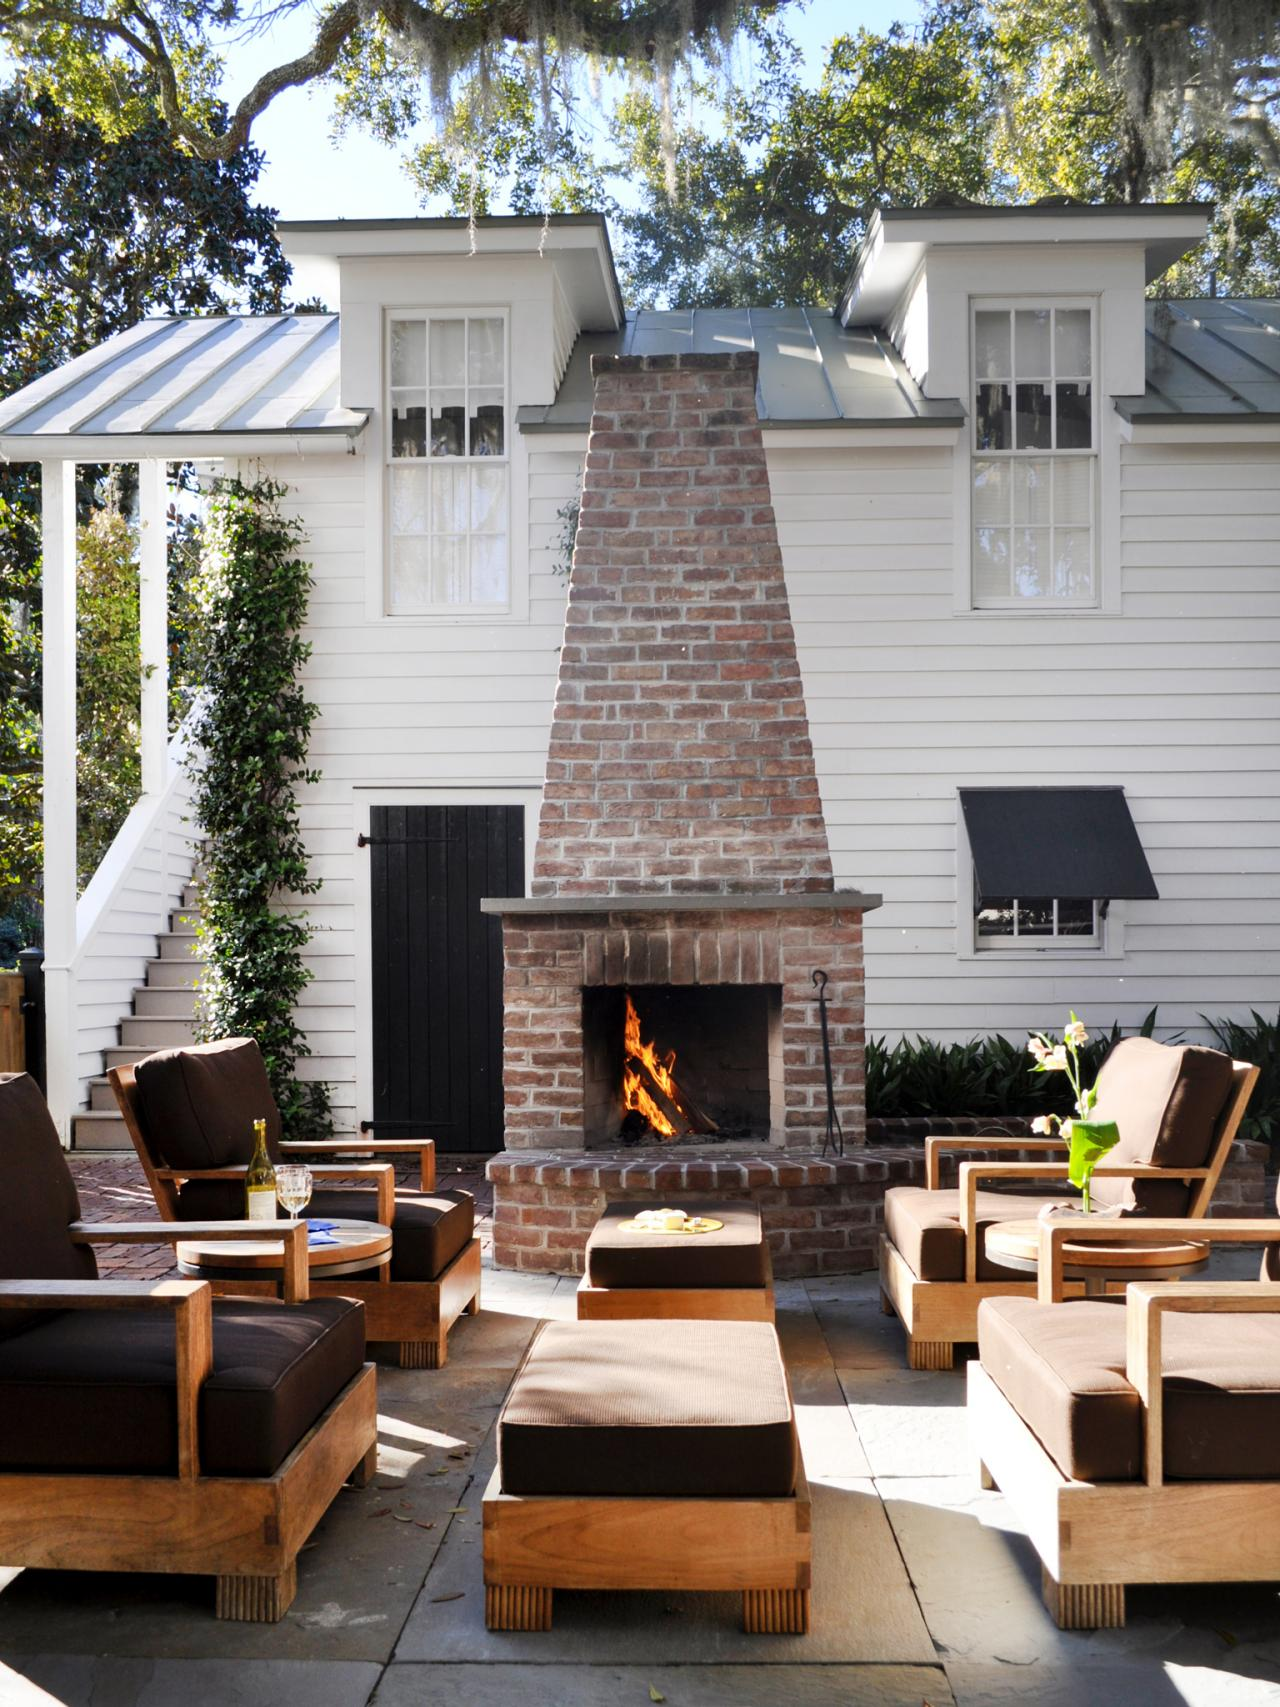 Explore your options for DIY outdoor fireplaces